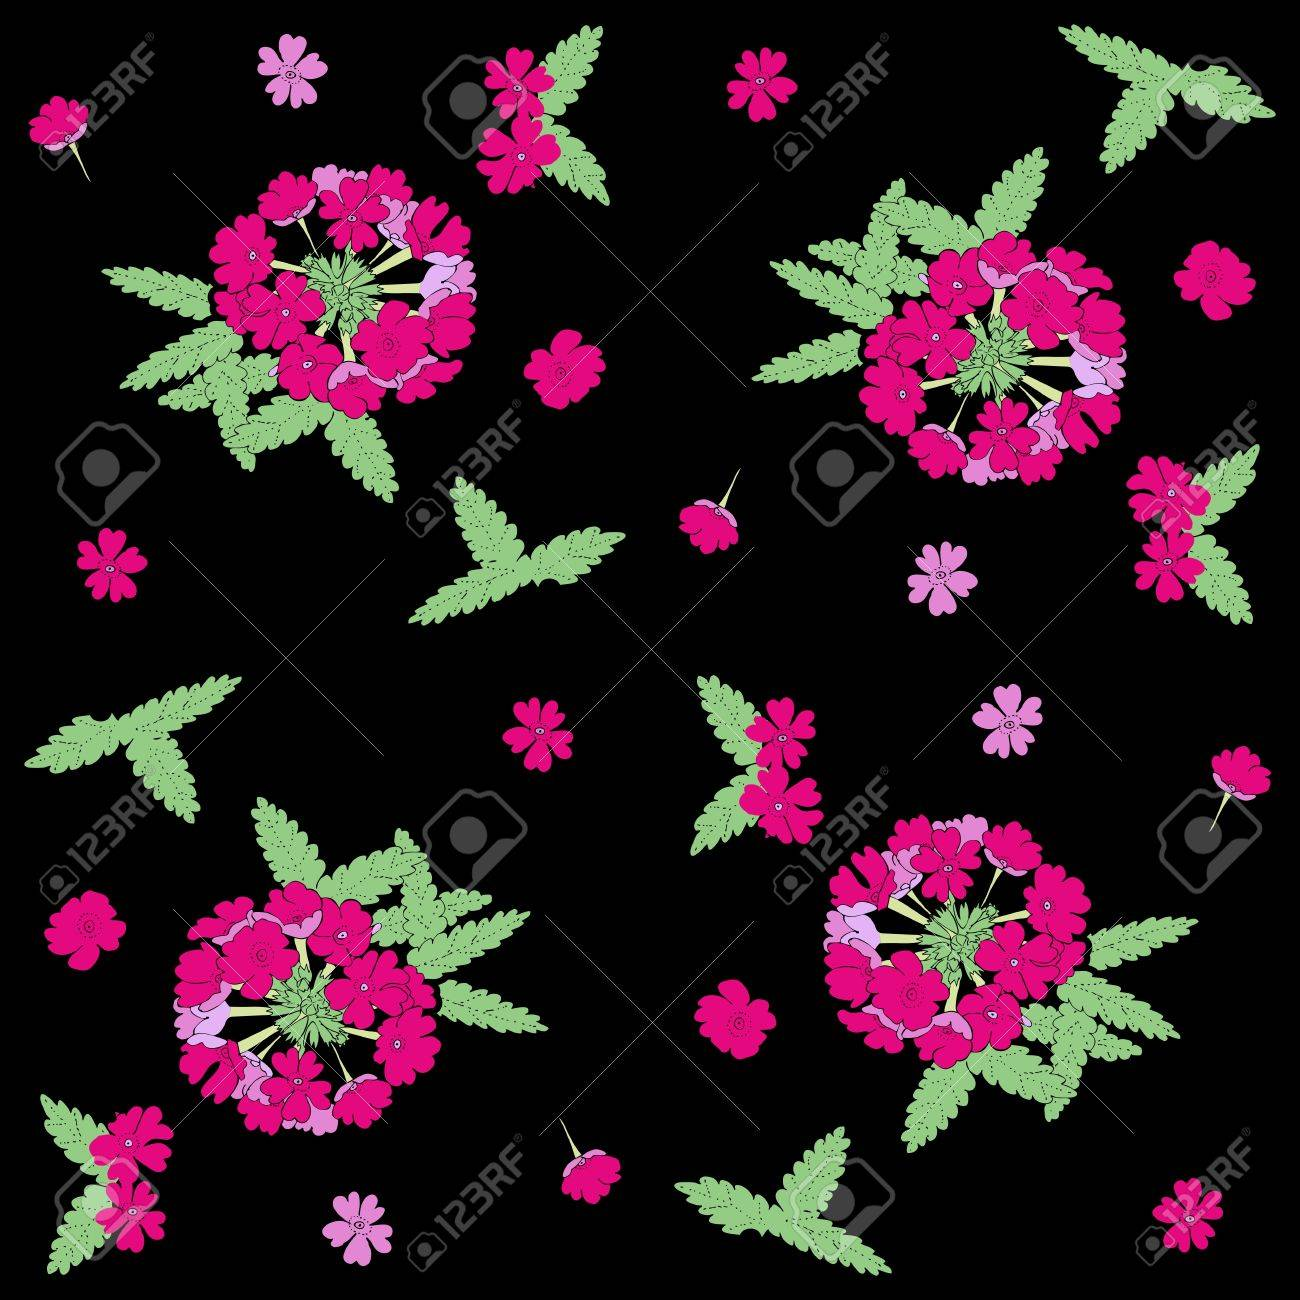 Endless Floral Wallpaper Pattern With Verbena On Black Background